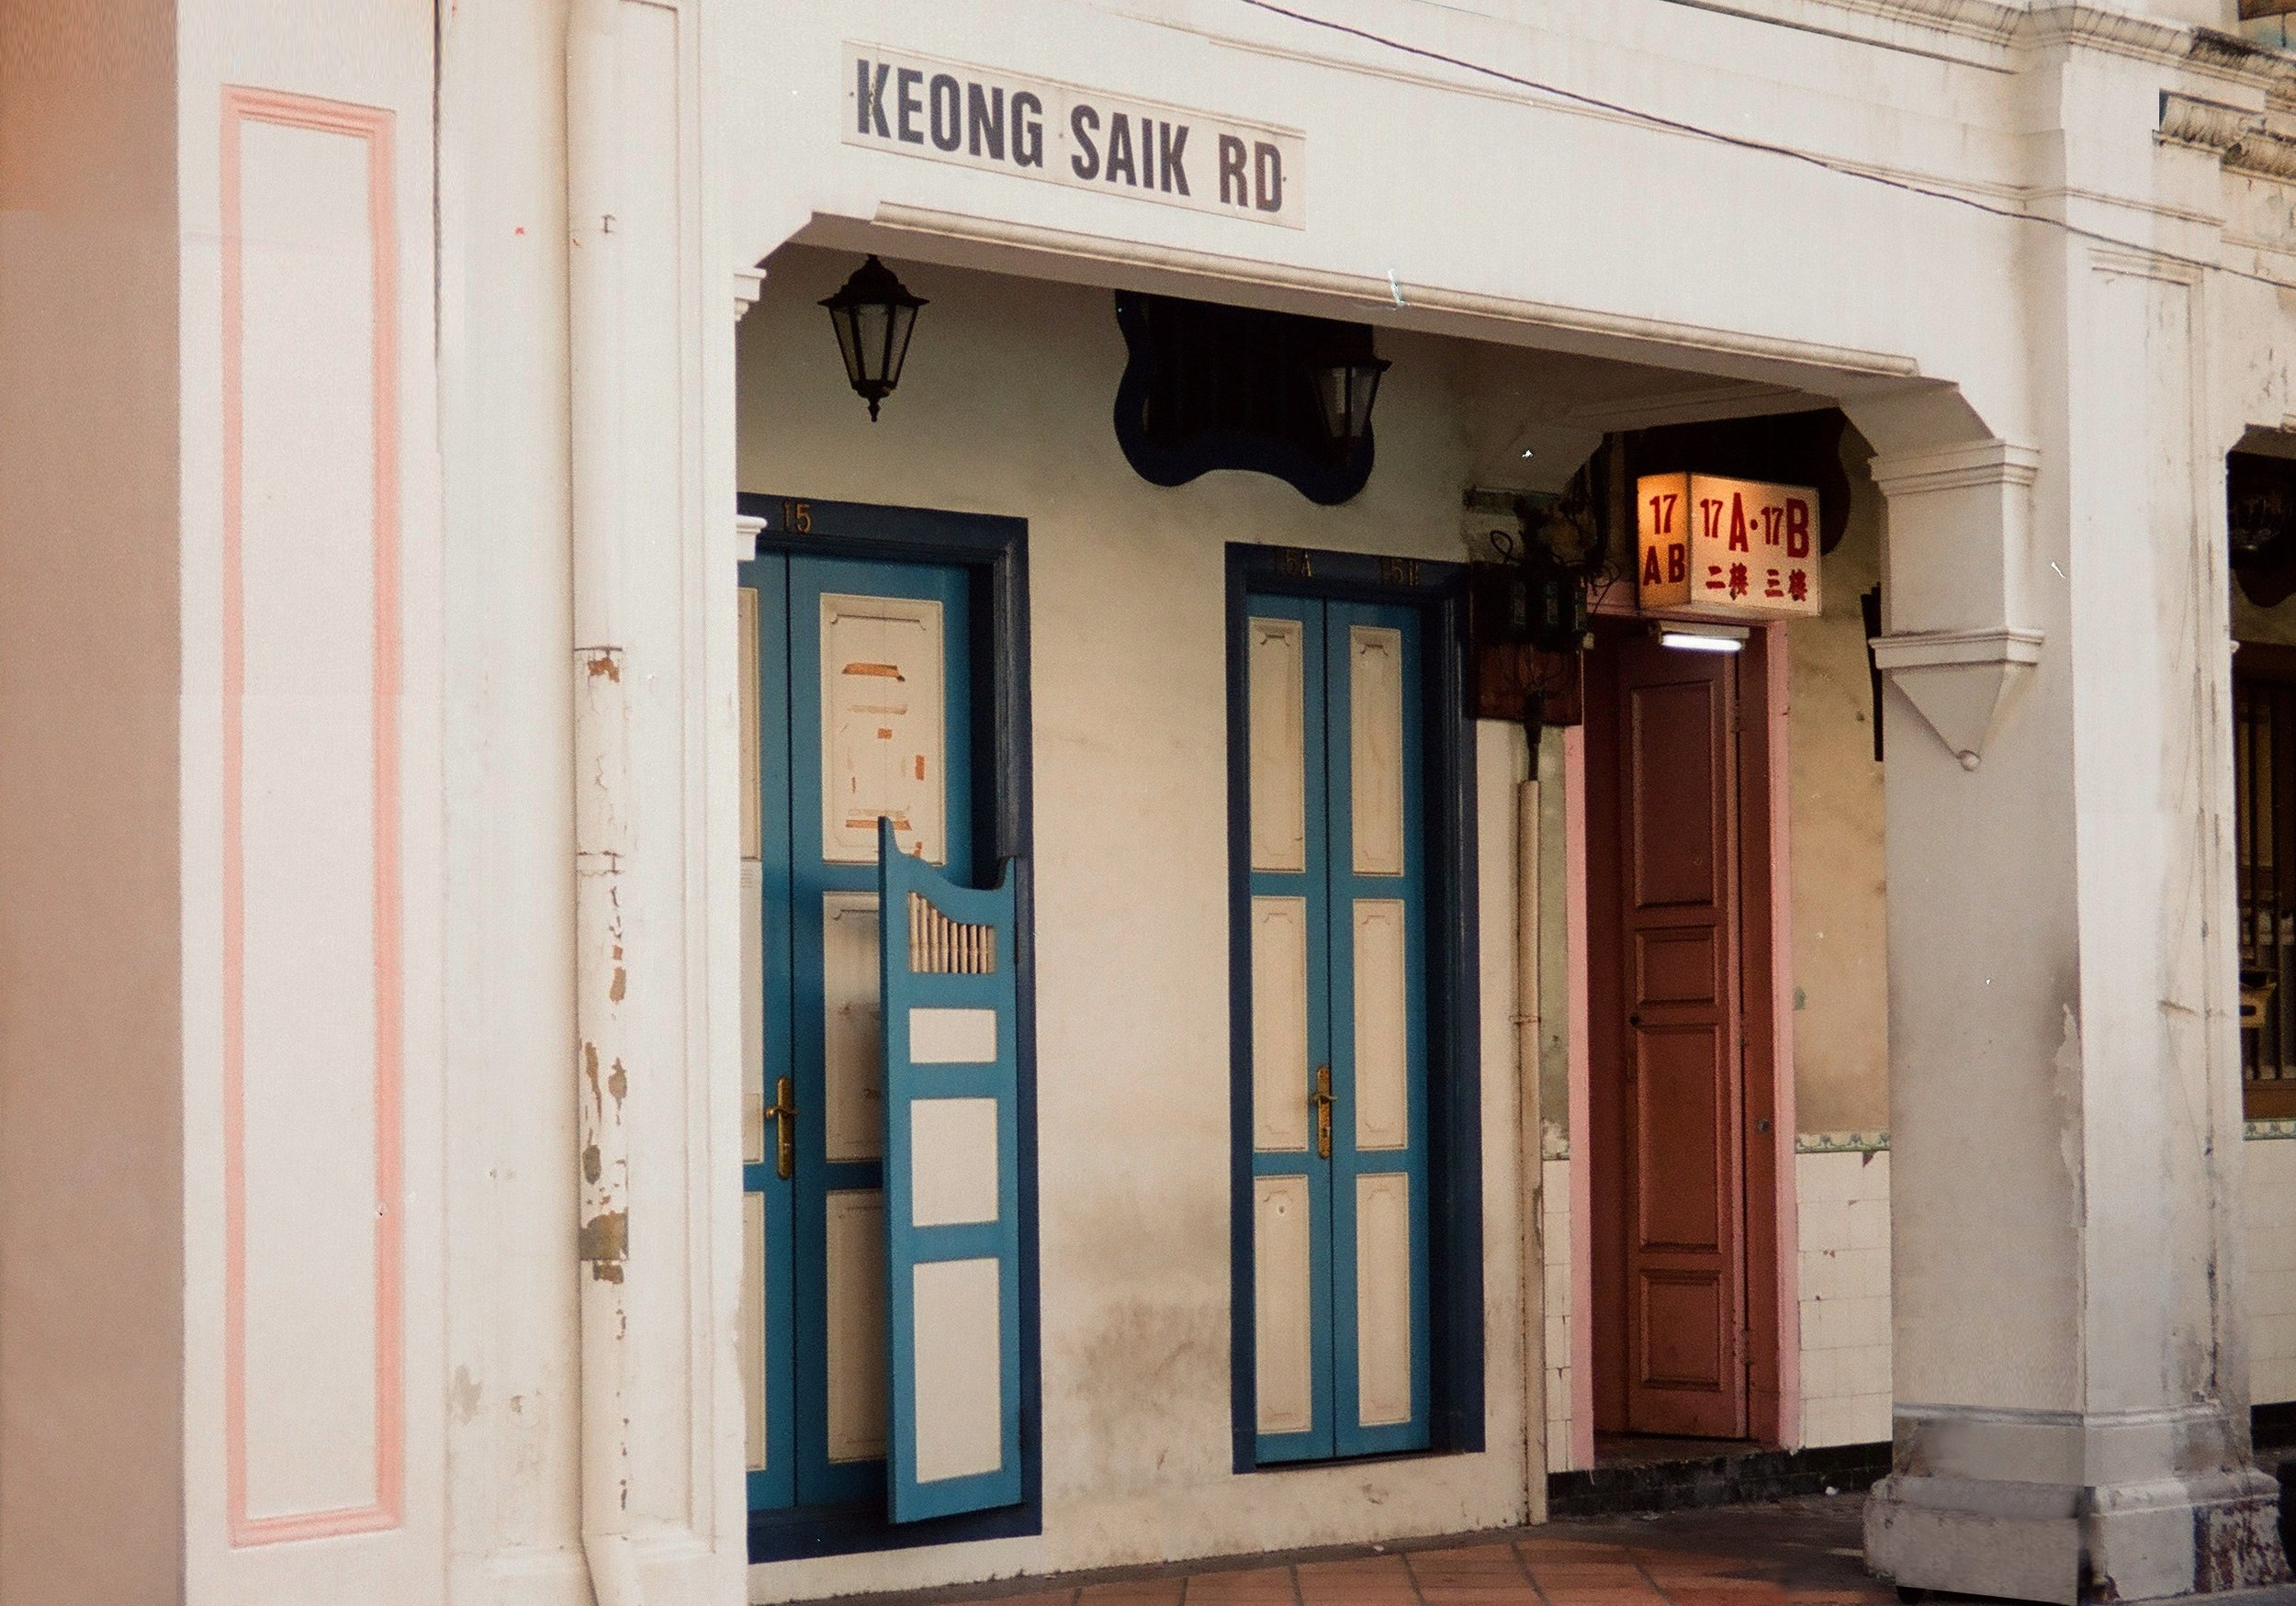 17A Keong Saik Road with its address written in red on a light box to differentiate it from residential shophouse units